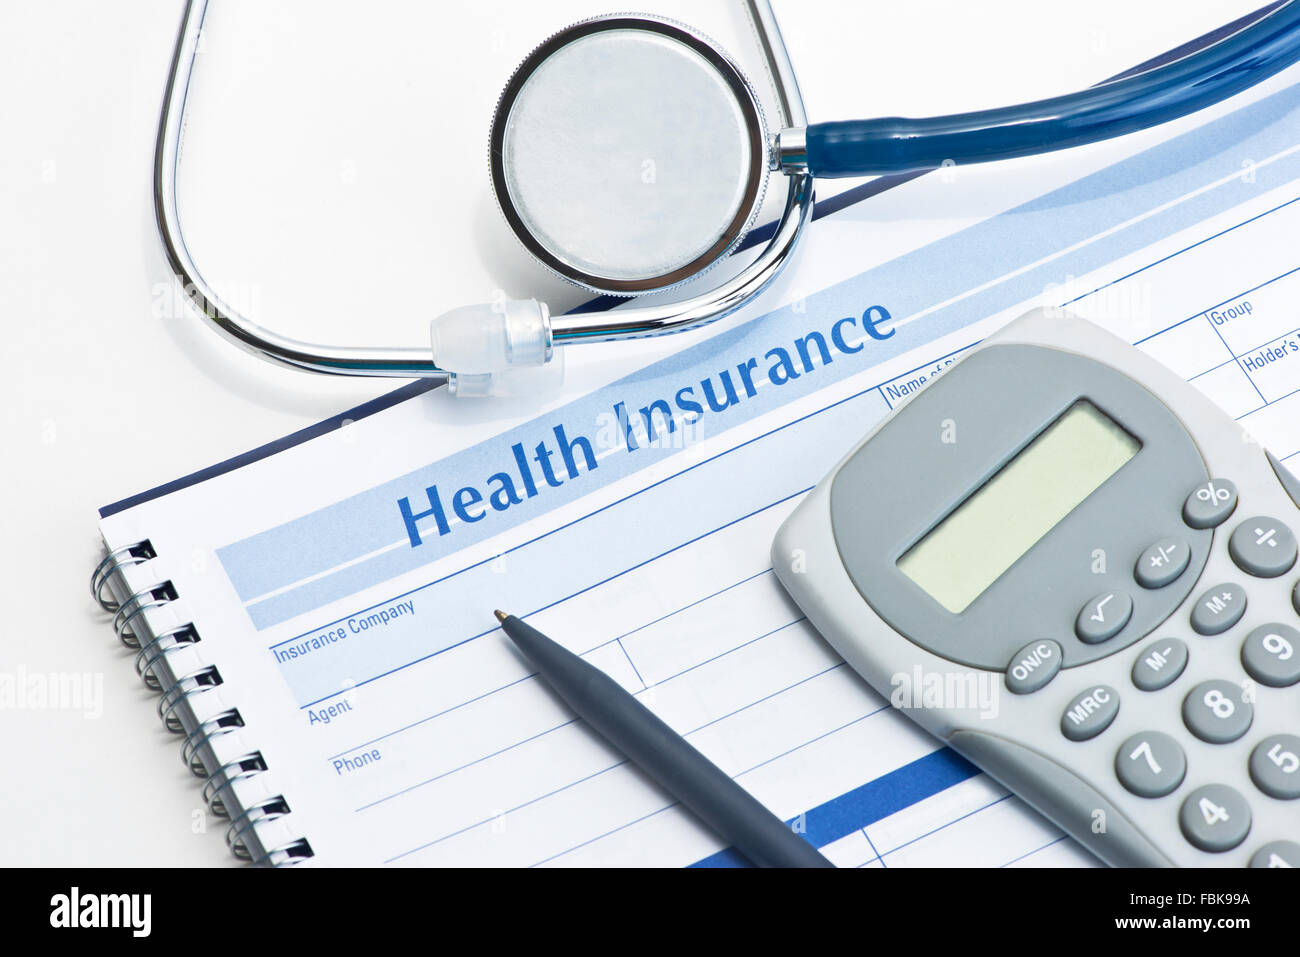 health insurance expense record with pen and calculator on white